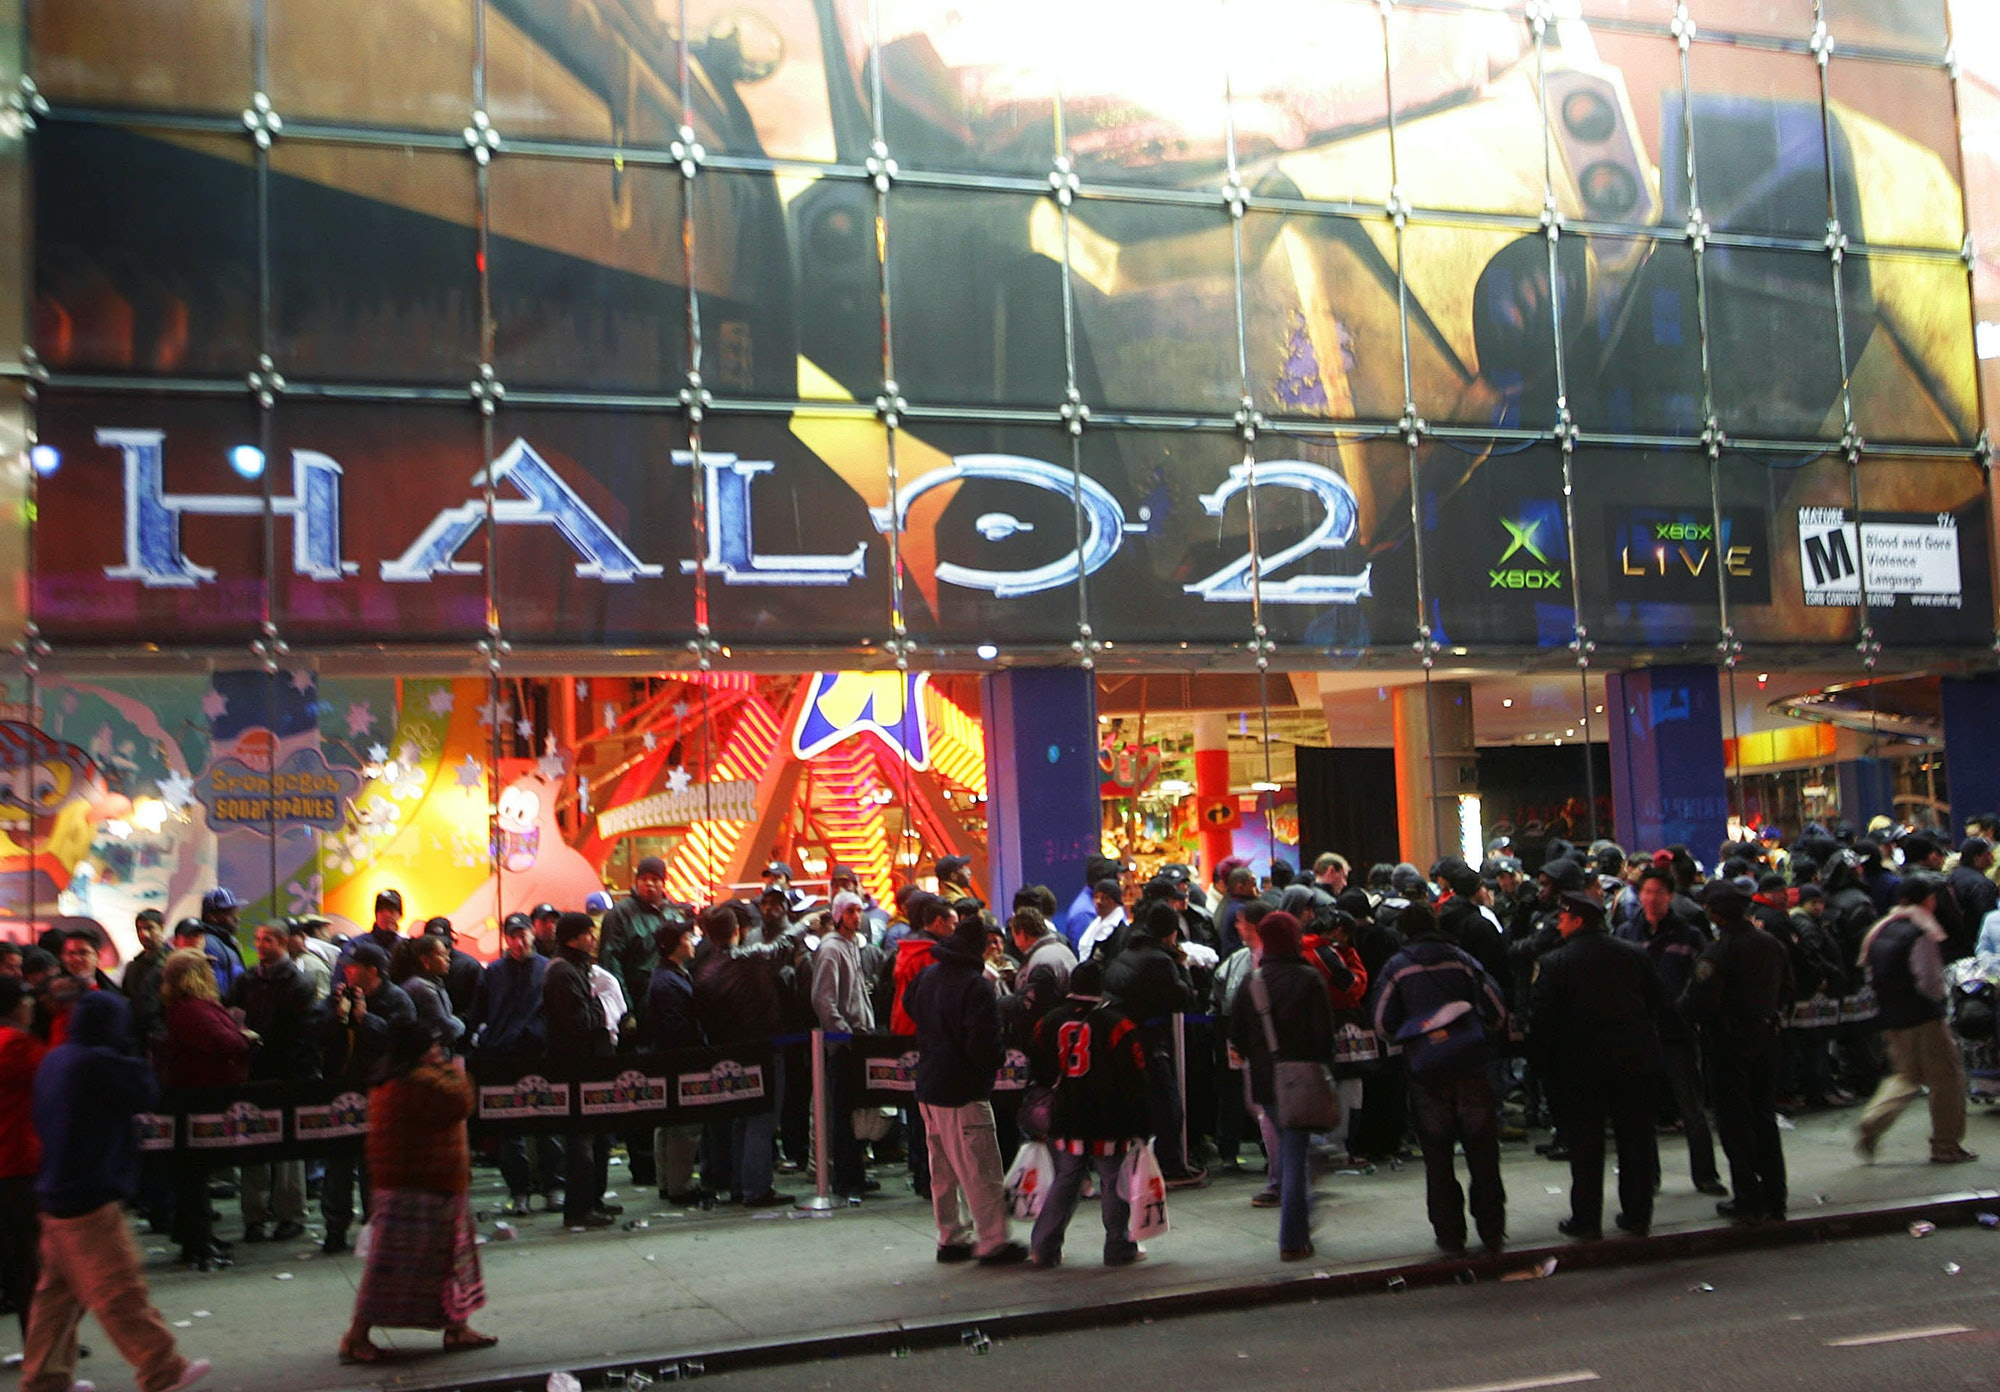 Fans of the game Halo 2 stand in line before midnight at the Toys 'R' Us store in Times Square November 8, 2004 in New York City.